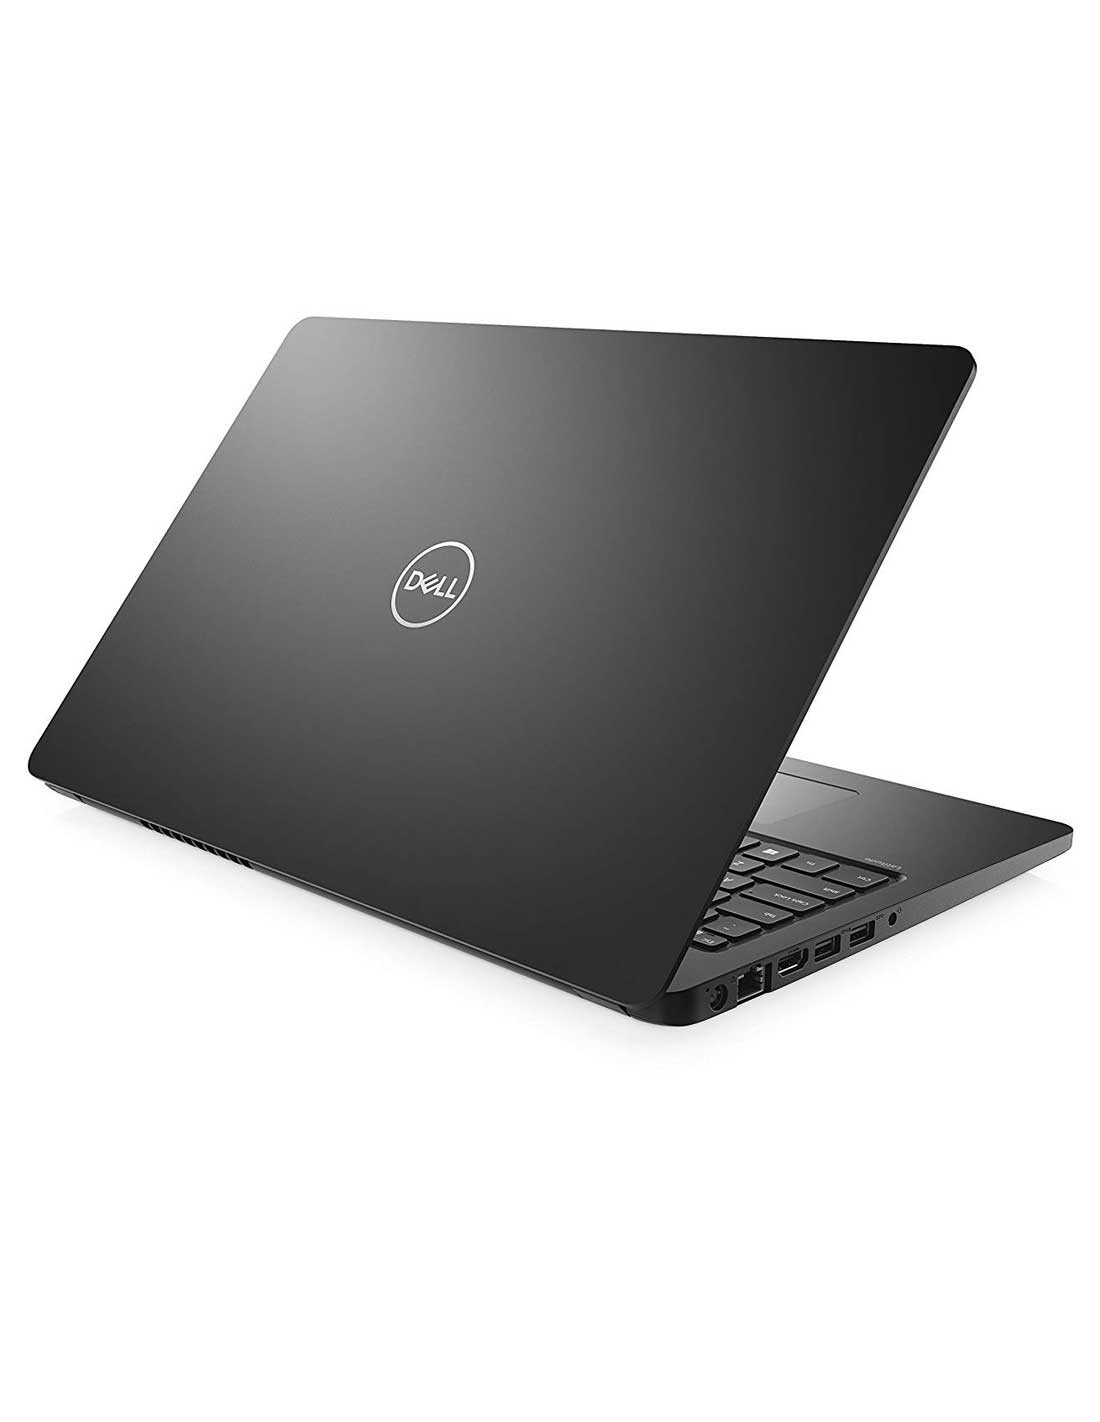 Latitude 3580 Laptop i5 images and photos in Dubai online store